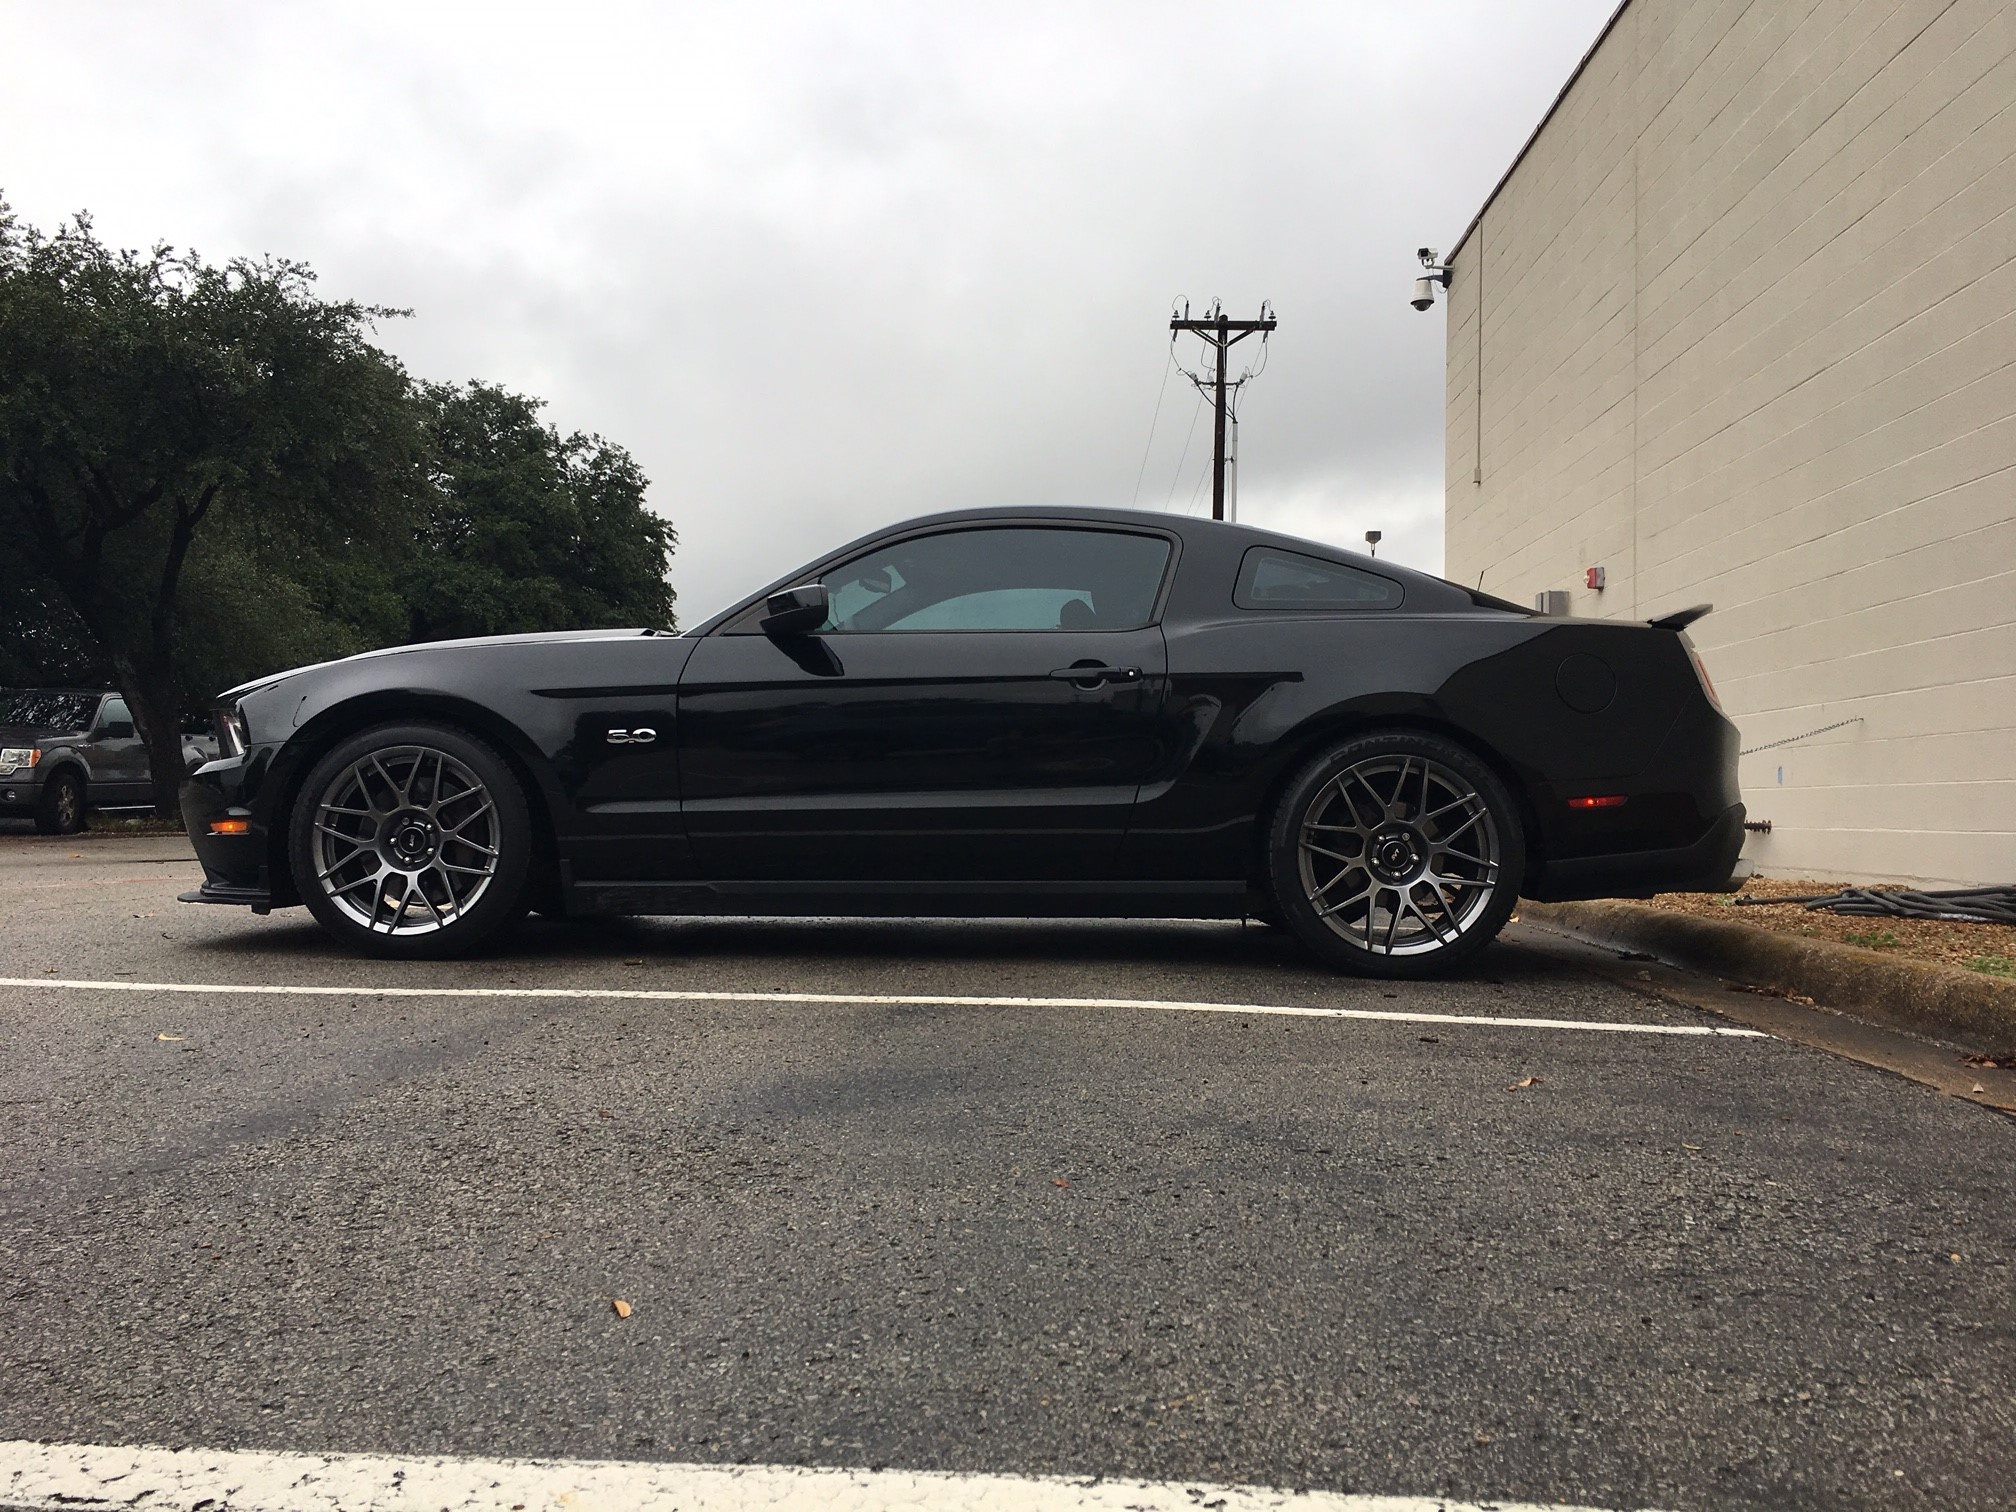 Mustang Shelby Gt500 Svtpp 19 20 Inch Oem Forged Wheels With New Continental Dw Svtperformance Com